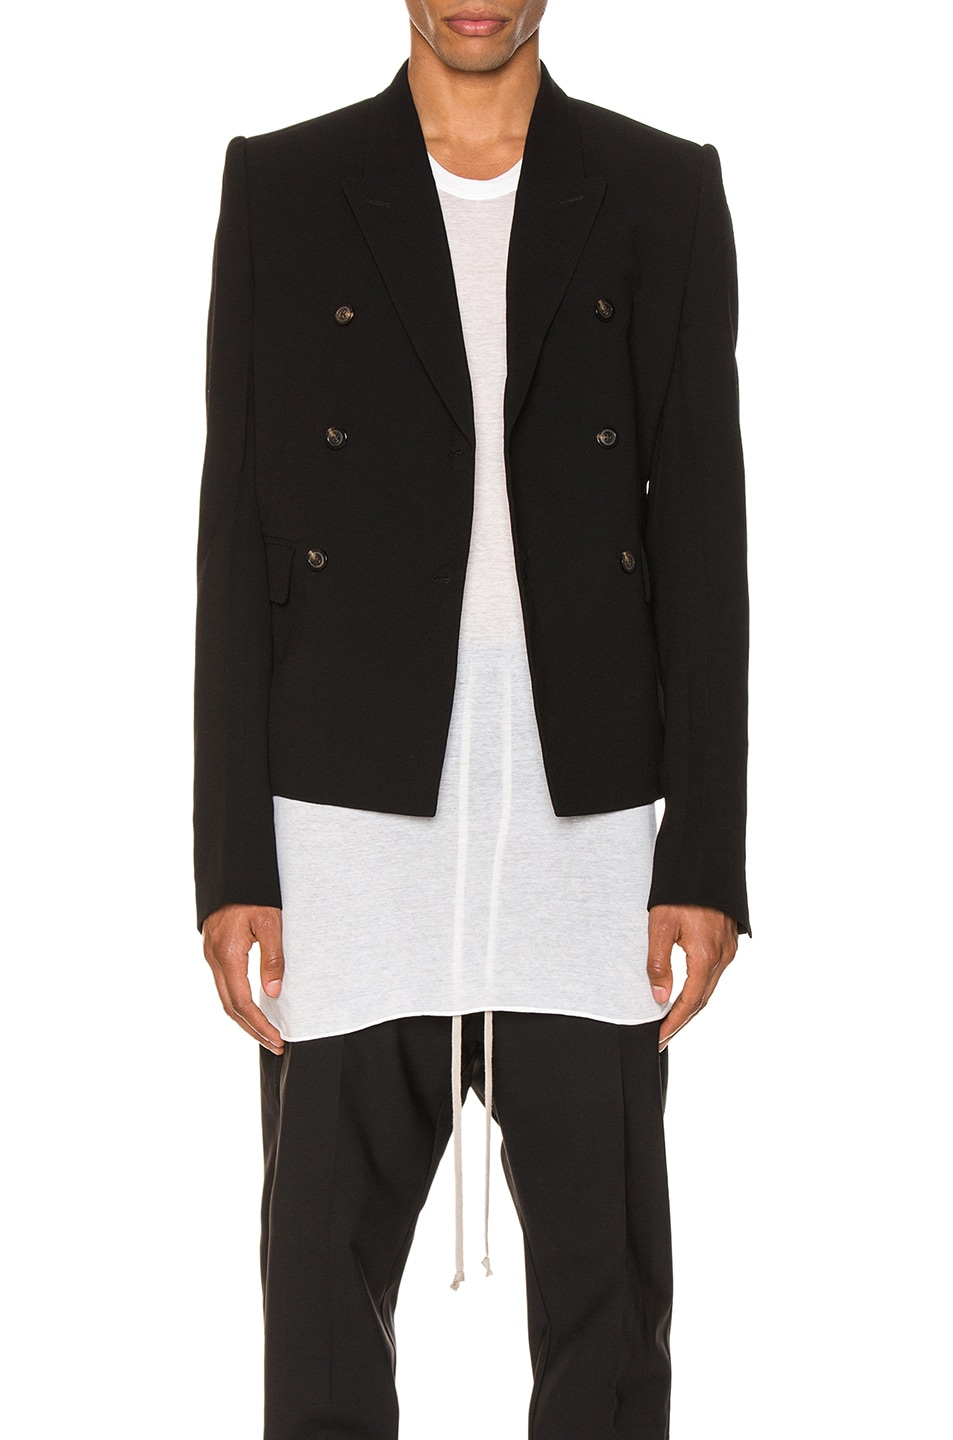 Image 1 of Rick Owens JMF Cropped Blazer in Black